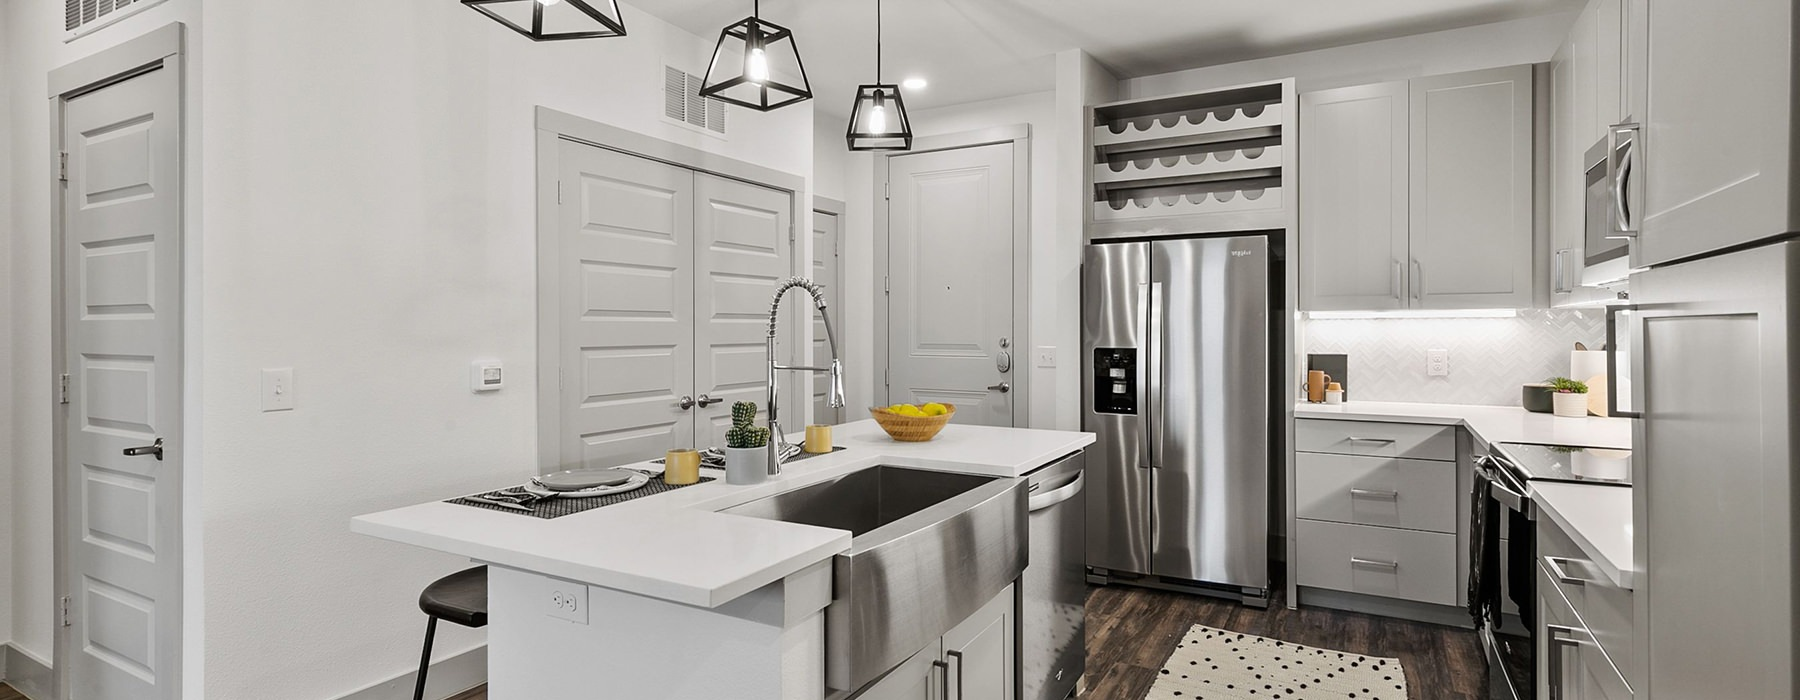 Studio, One & Two Bedroom Apartments In Fort Worth